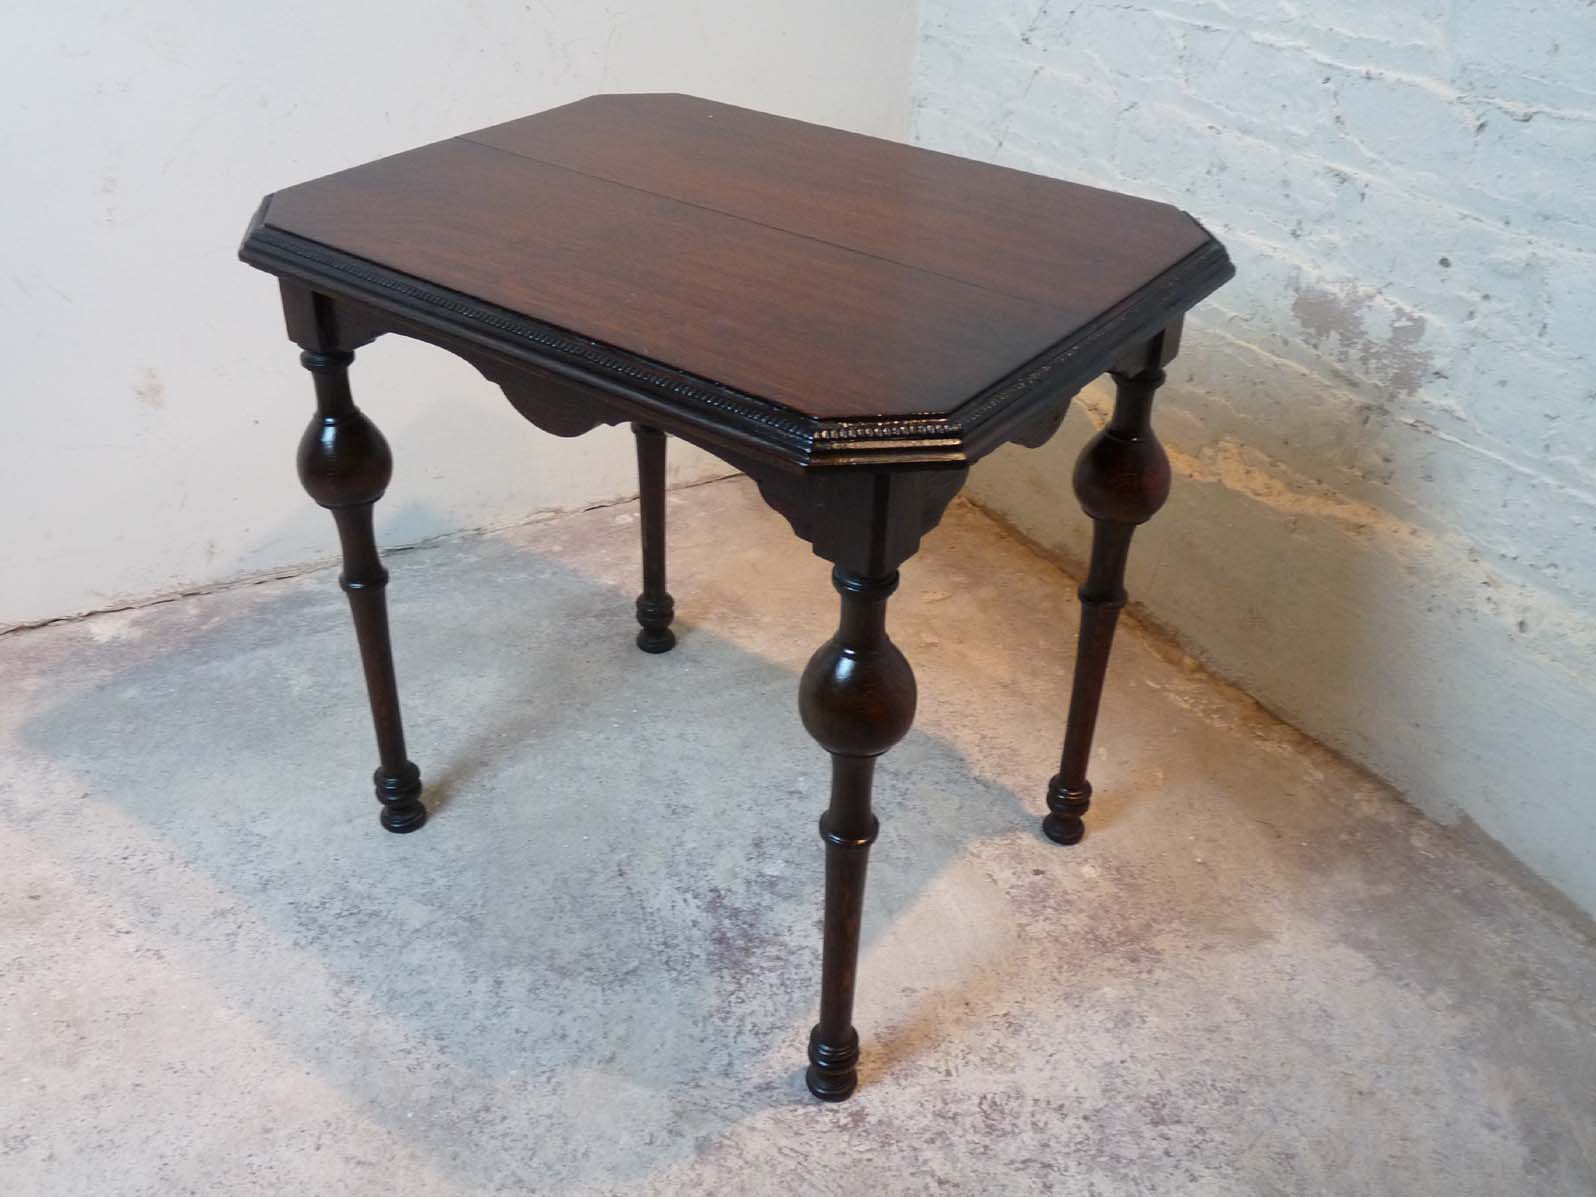 Vixtorian Side Table Antiques in Margate